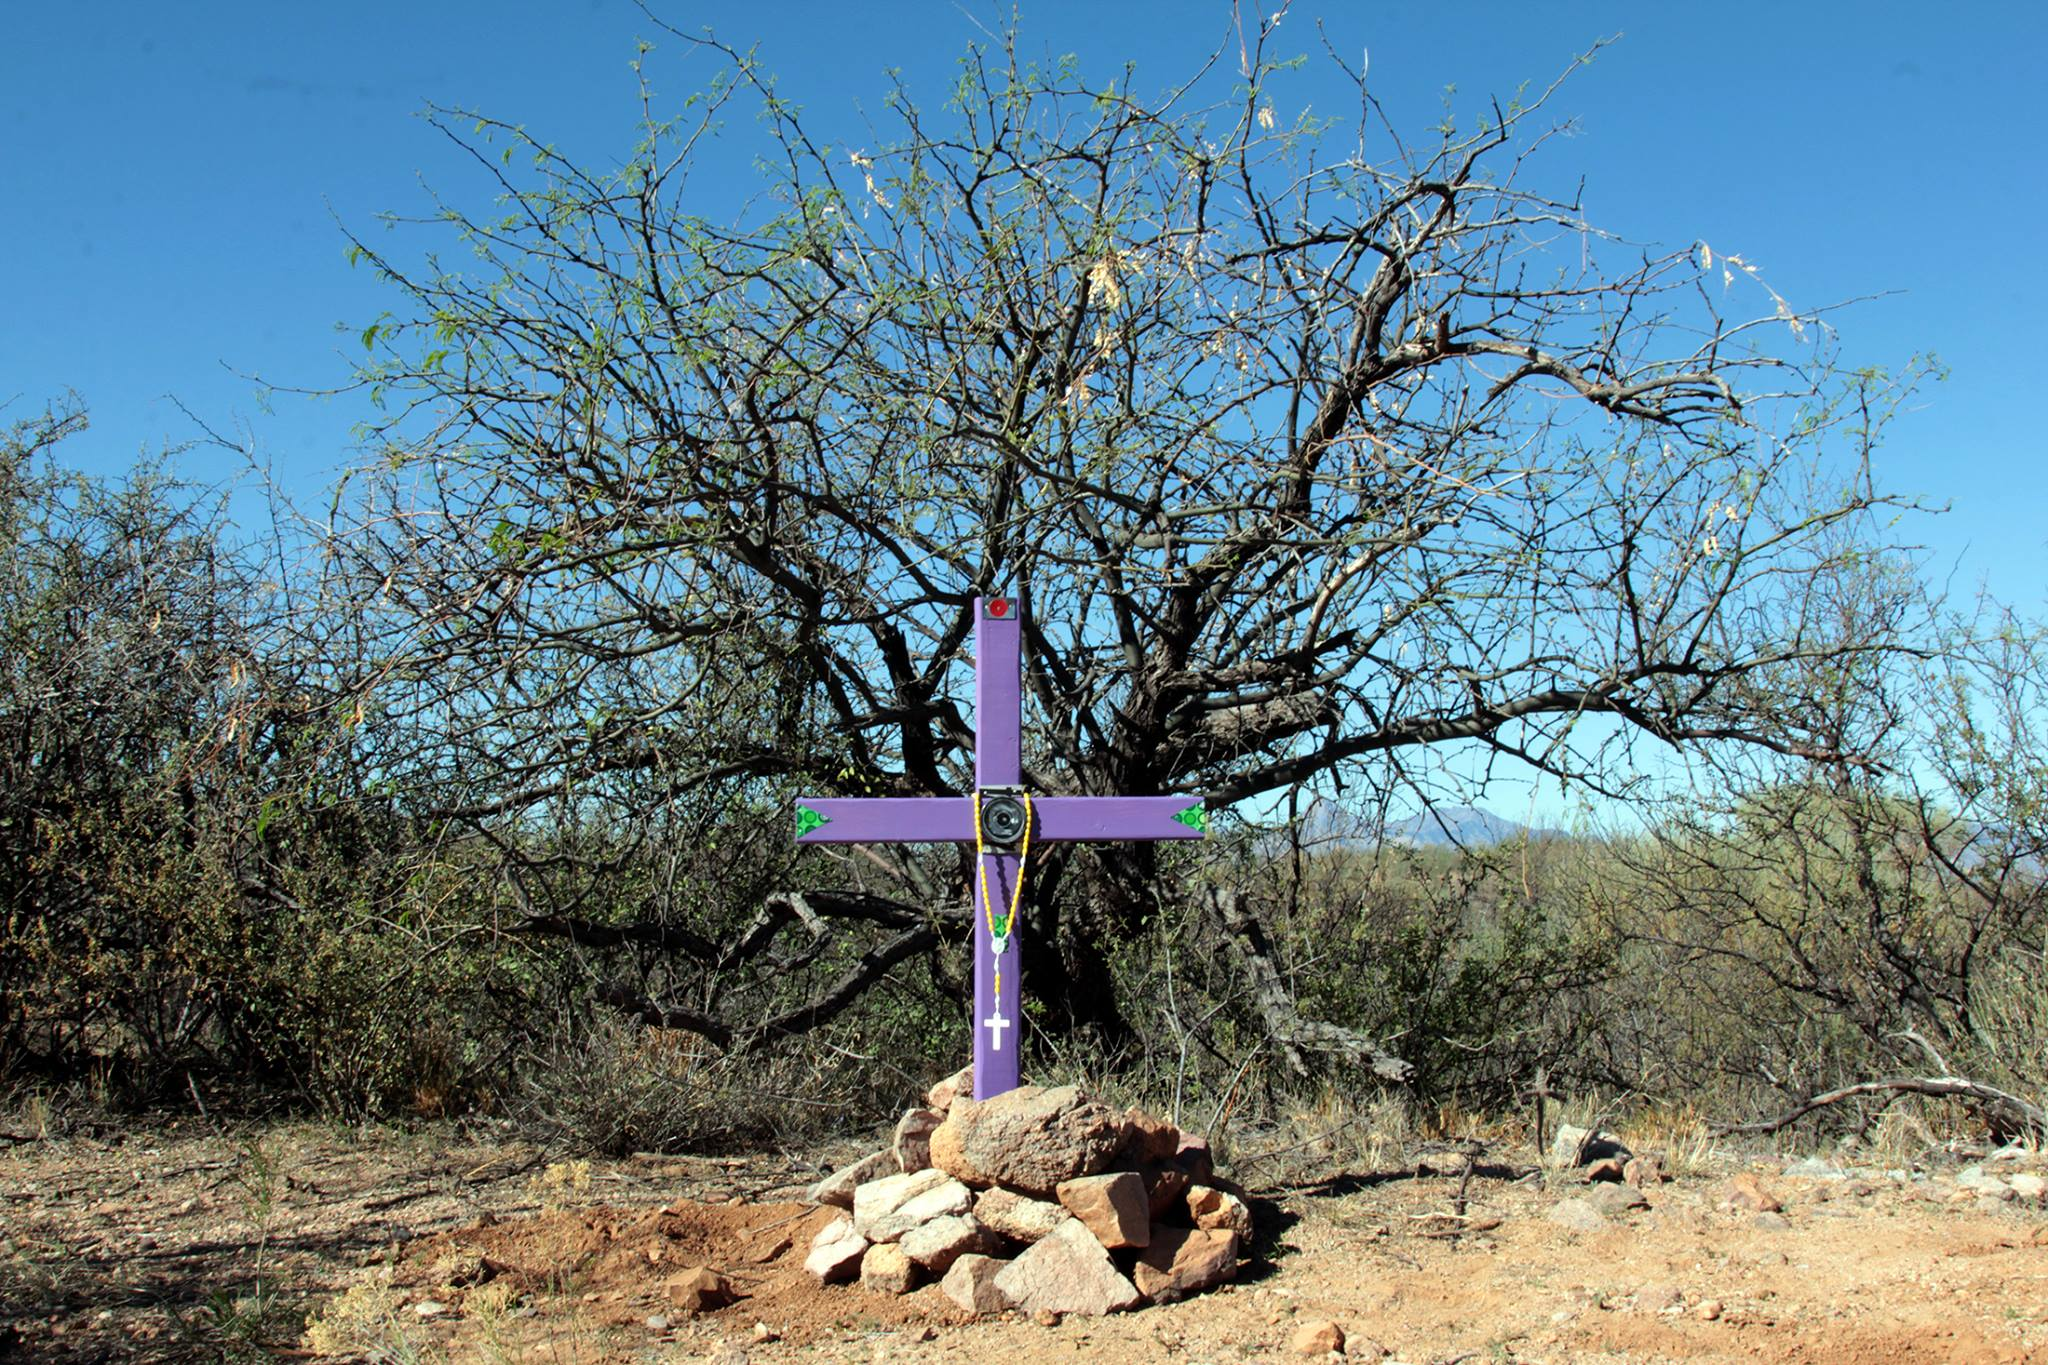 A handmade cross in Arizona's Sonoran Desert representing where a fallen migrant's remains were found. Photo by Joshua Barajas.